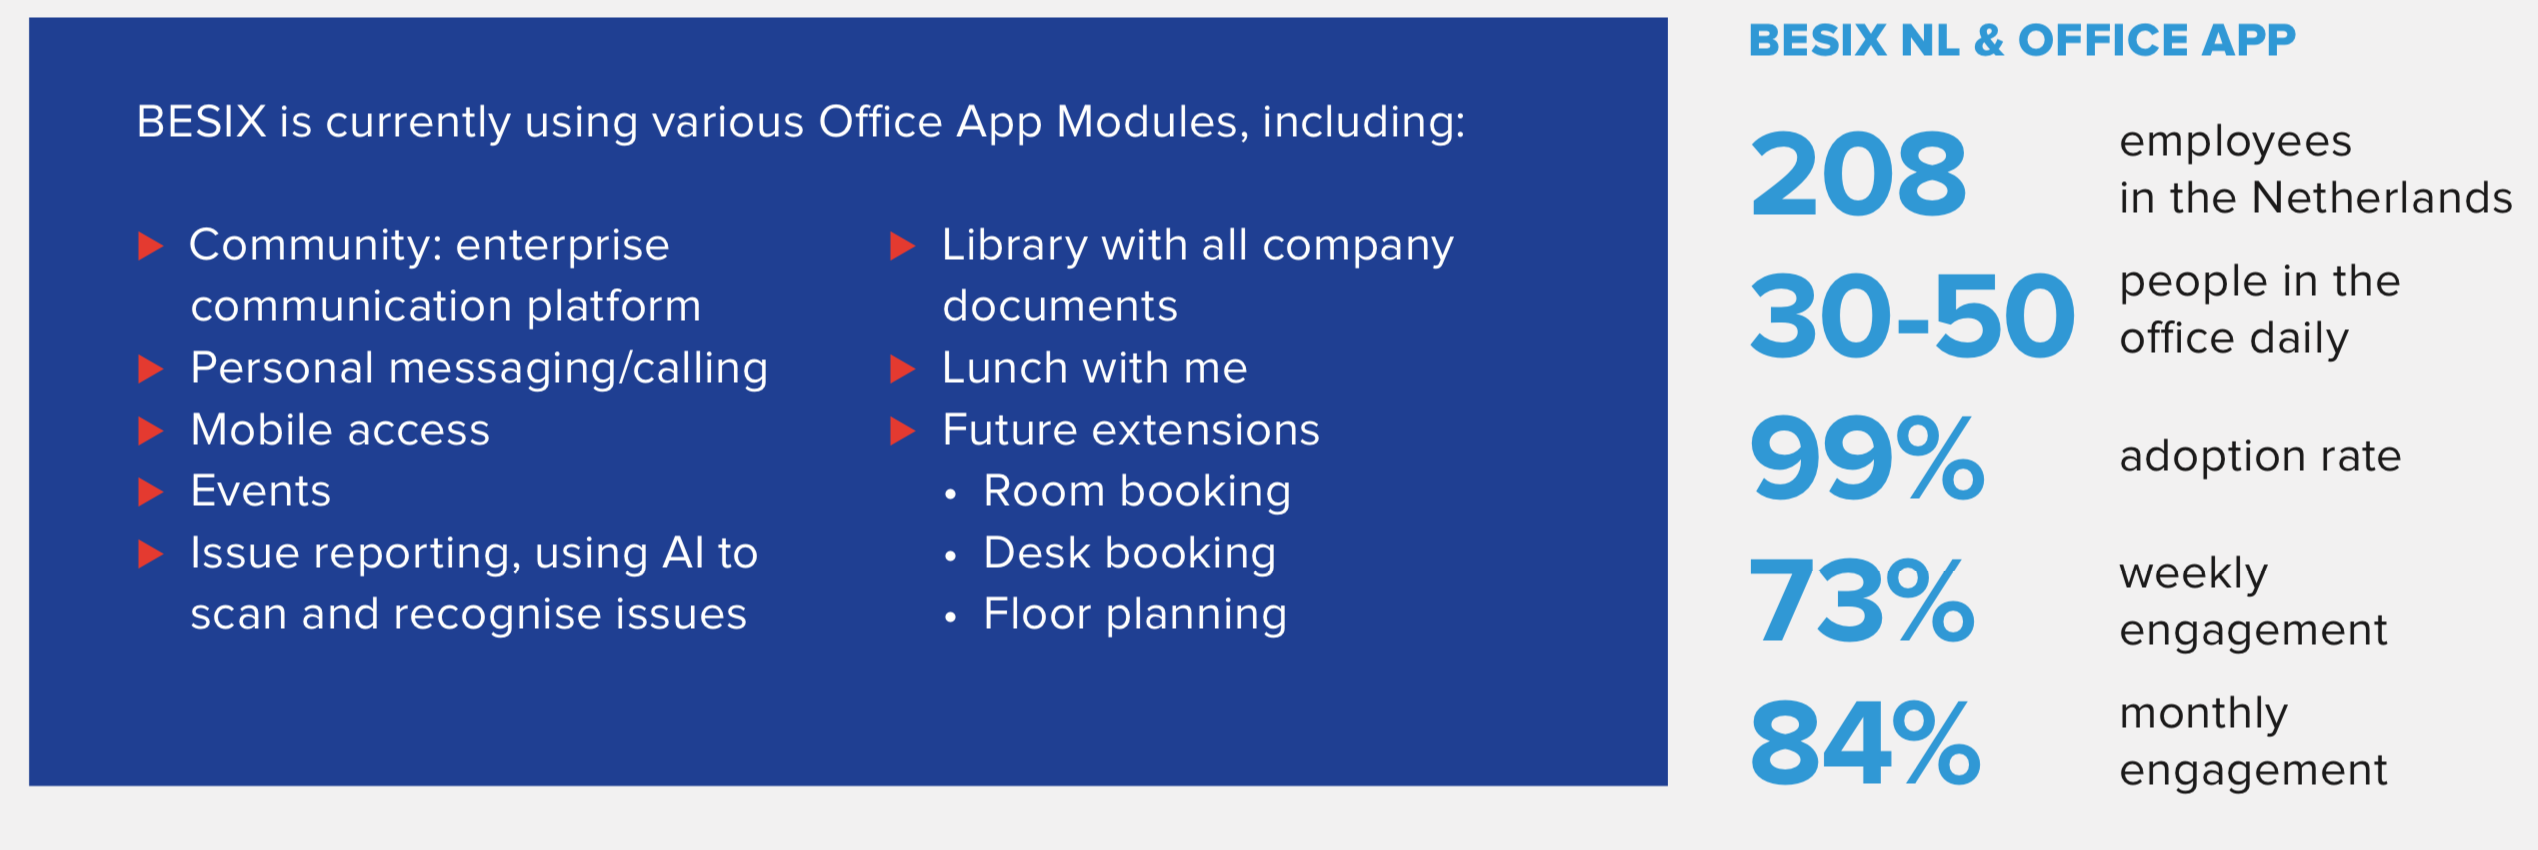 Besix and Office App in numbers